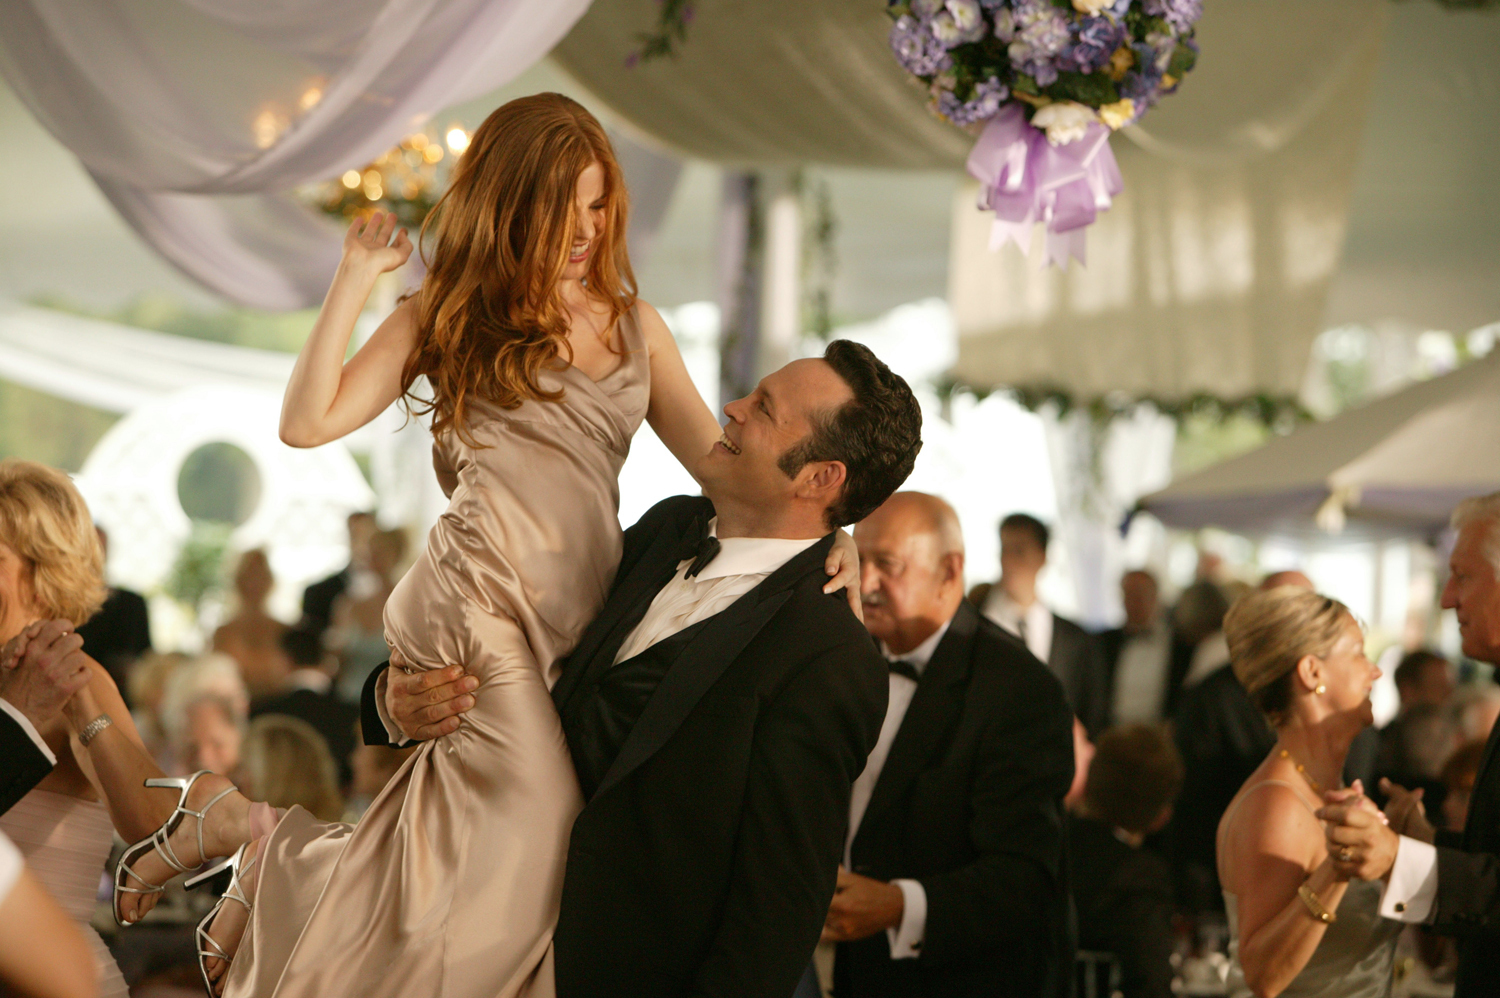 Wedding crashers images the wedding crashers hd wallpaper for Die hochzeits crasher